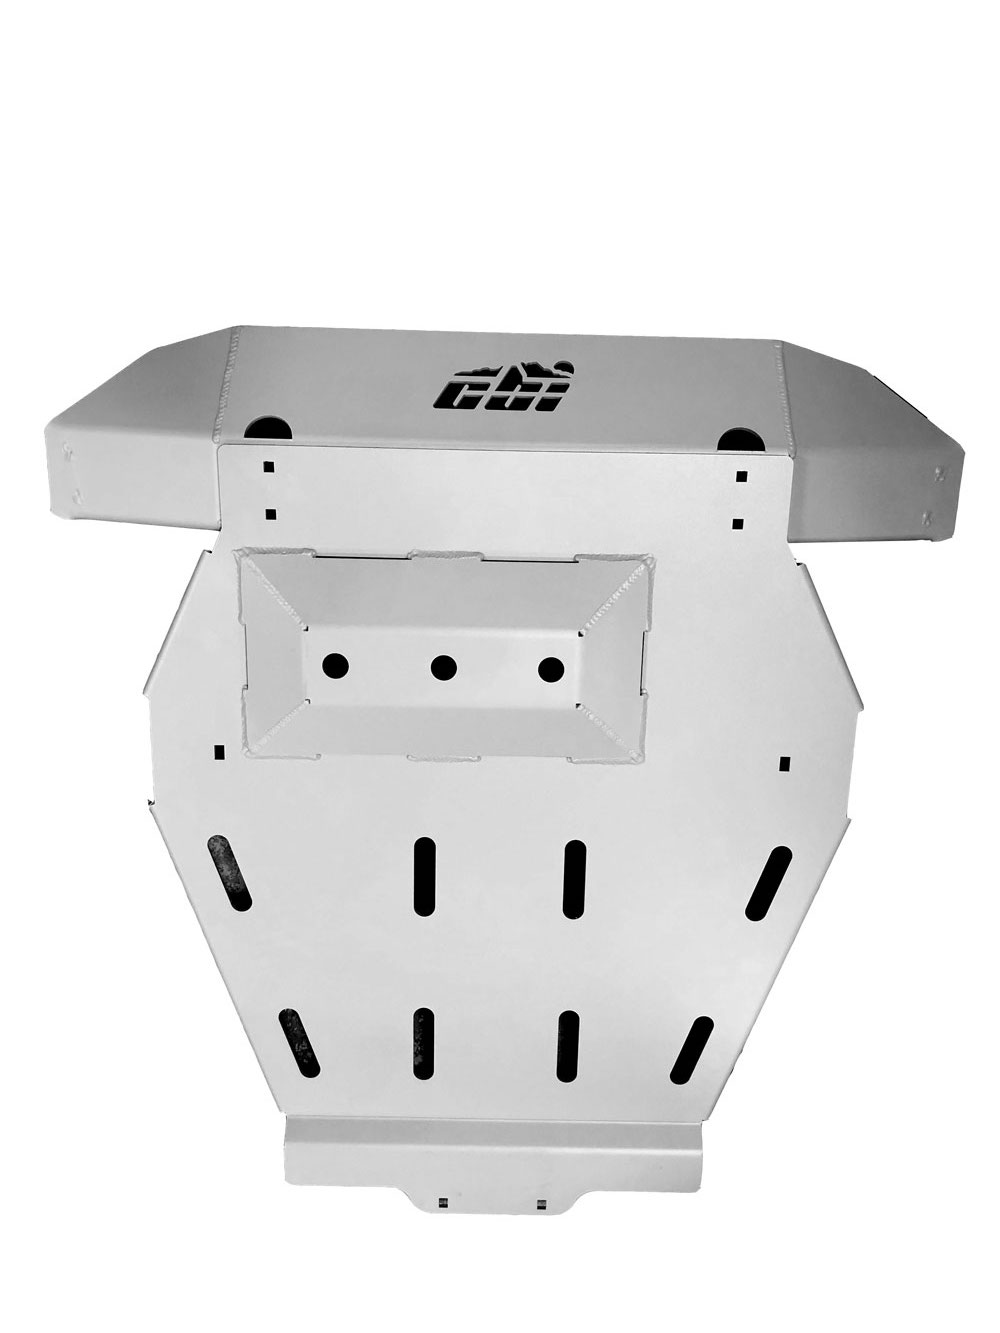 CBI 5th Gen 4Runner Rear Skid Plate